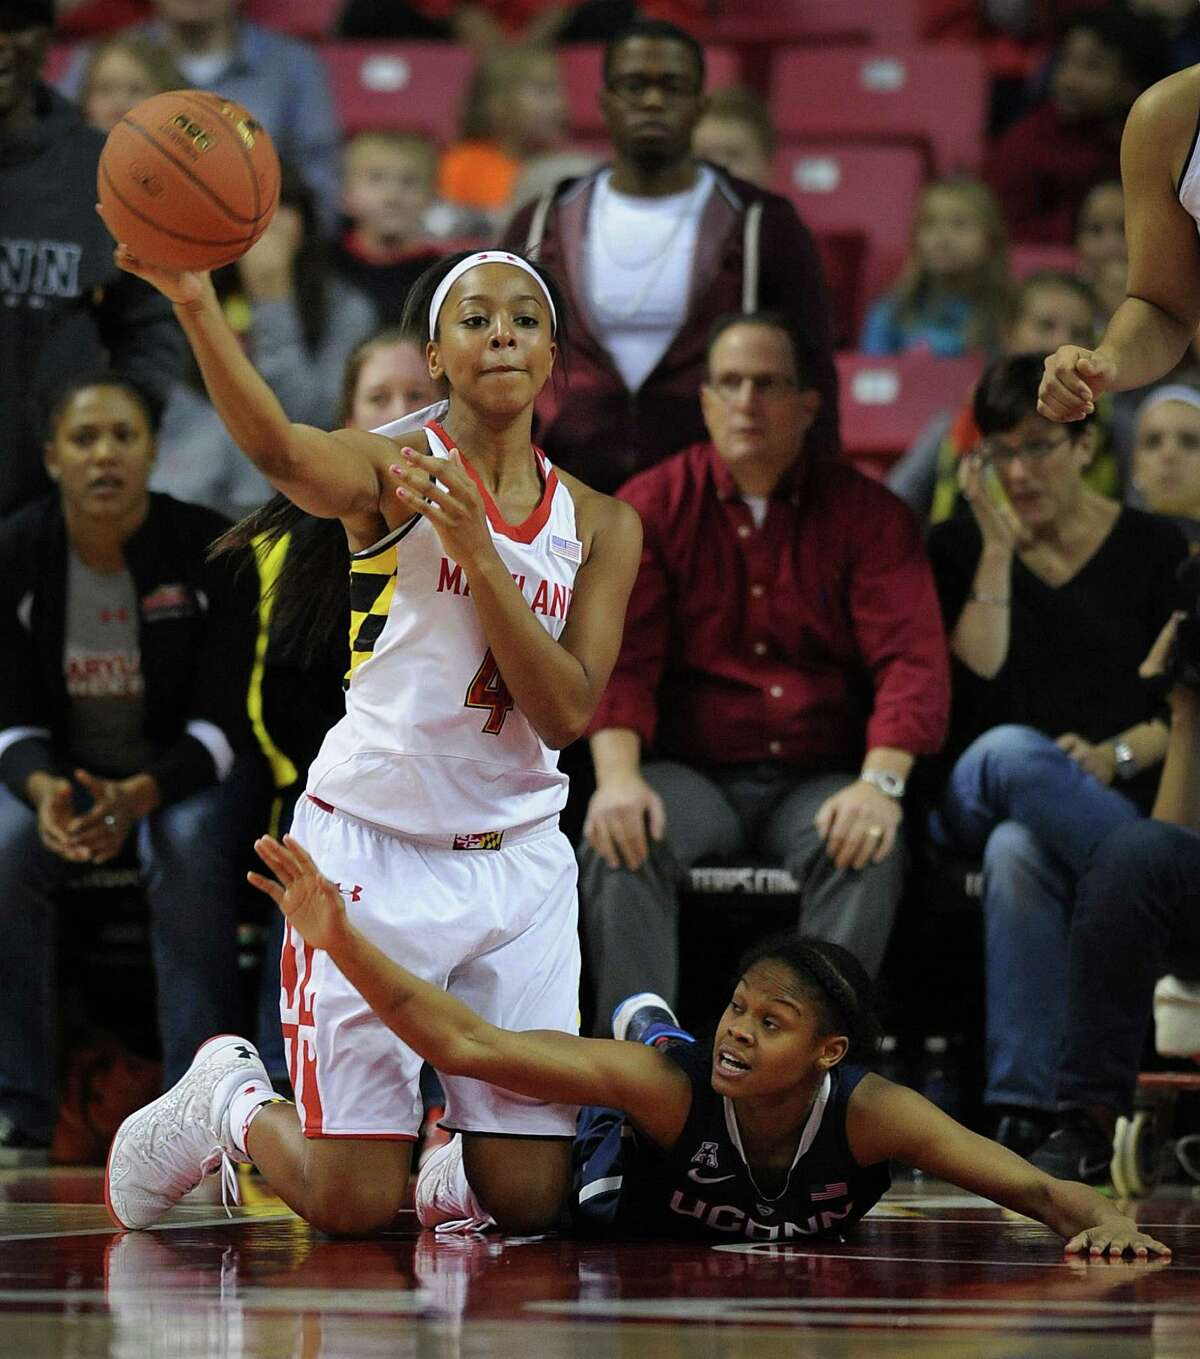 Maryland's Lexie Brown, left, passes from her knees as Connecticut's Moriah Jefferson struggles to block in the second half of an NCAA basketball game Friday, Nov. 15, 2013 in College Park, Md. Connecticut won 72-55.(AP Photo/Gail Burton)